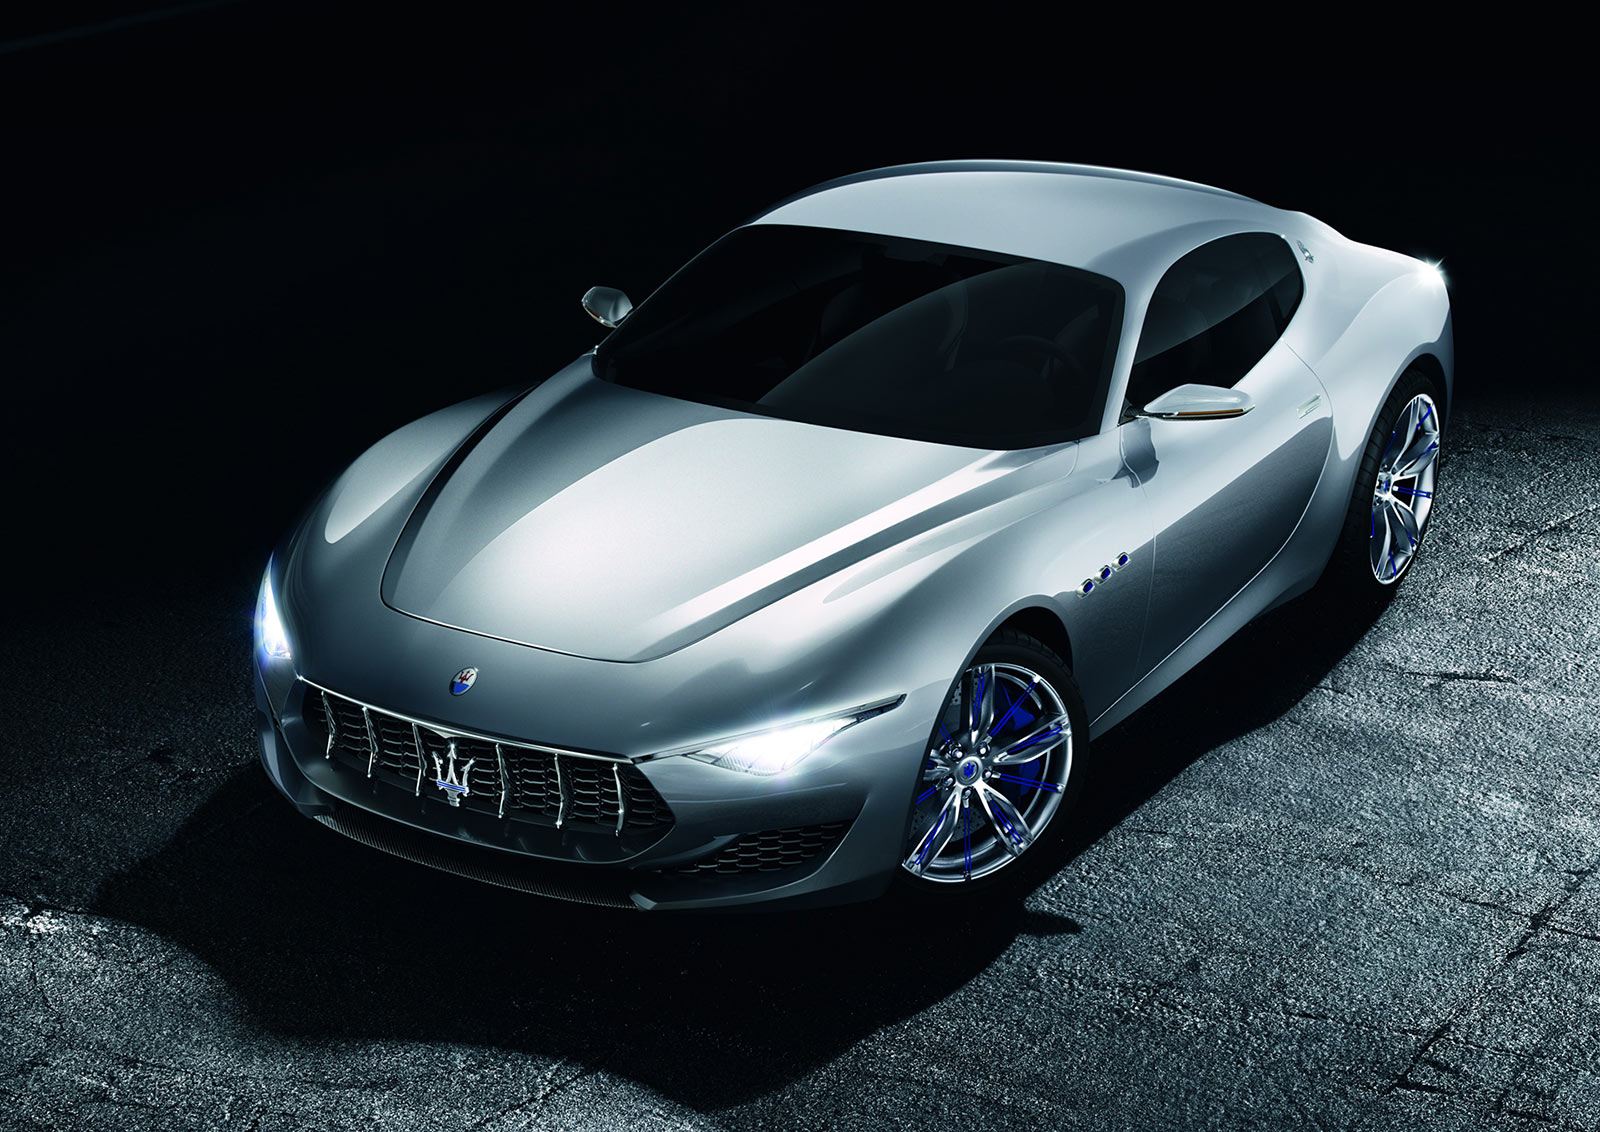 maserati alfieri concept car body design. Black Bedroom Furniture Sets. Home Design Ideas